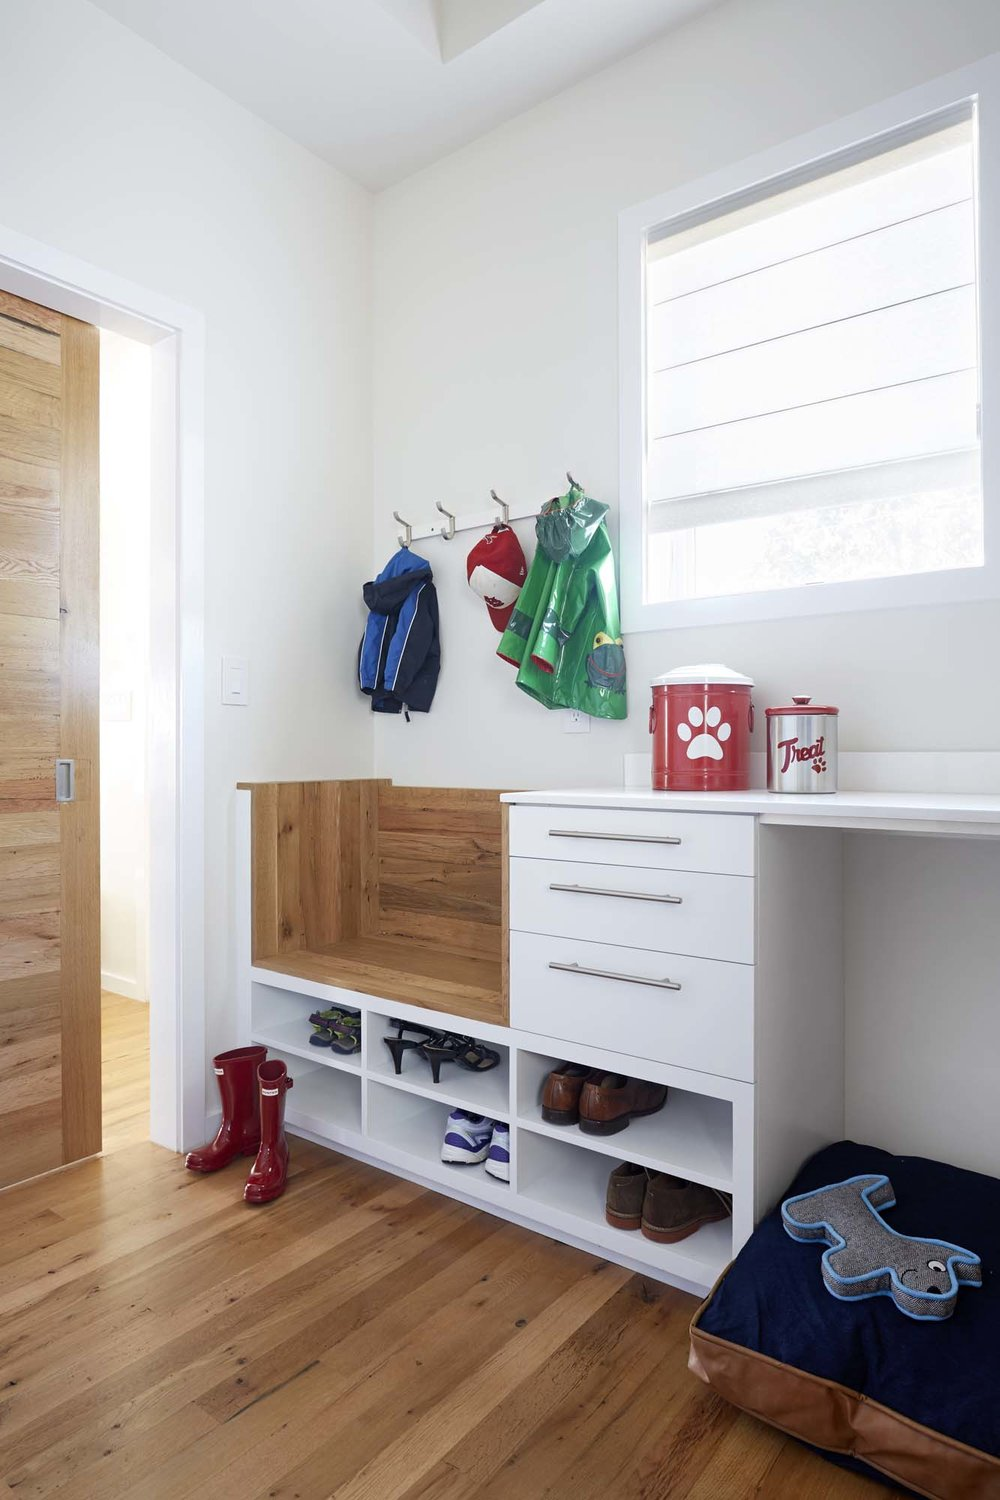 How to Create an Organized & Stylish Mudroom or Entryway